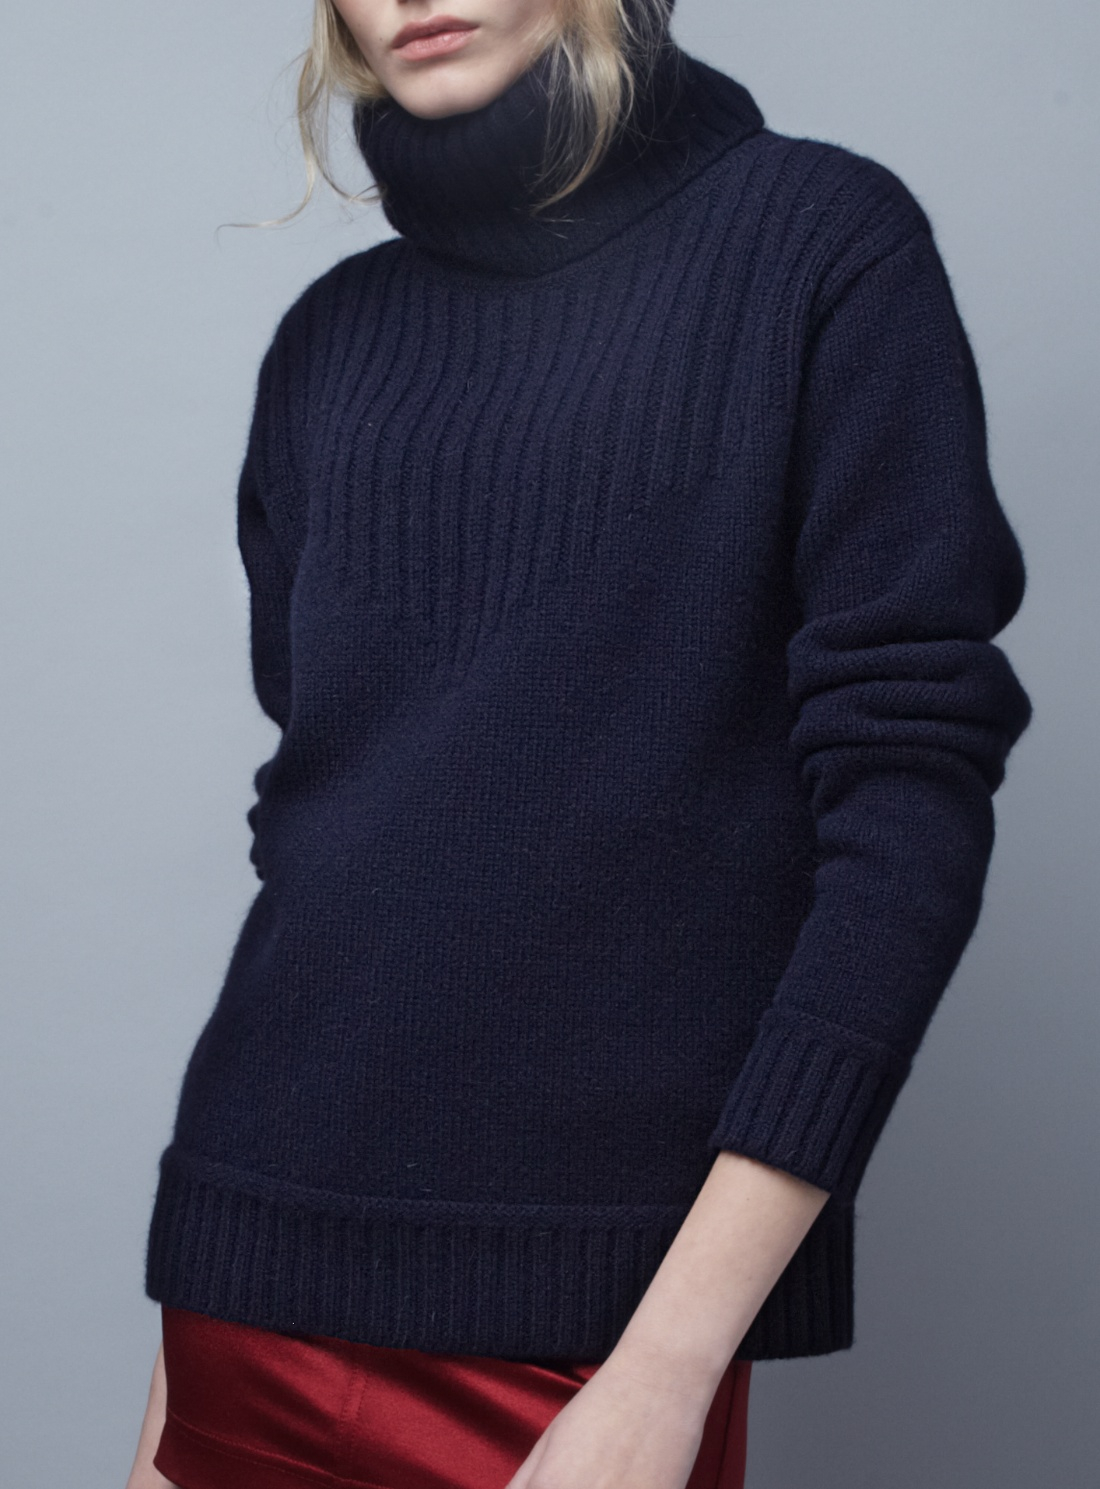 Blake ldn Navy Redfern Turtleneck Sweater- Last One By in Blue | Lyst